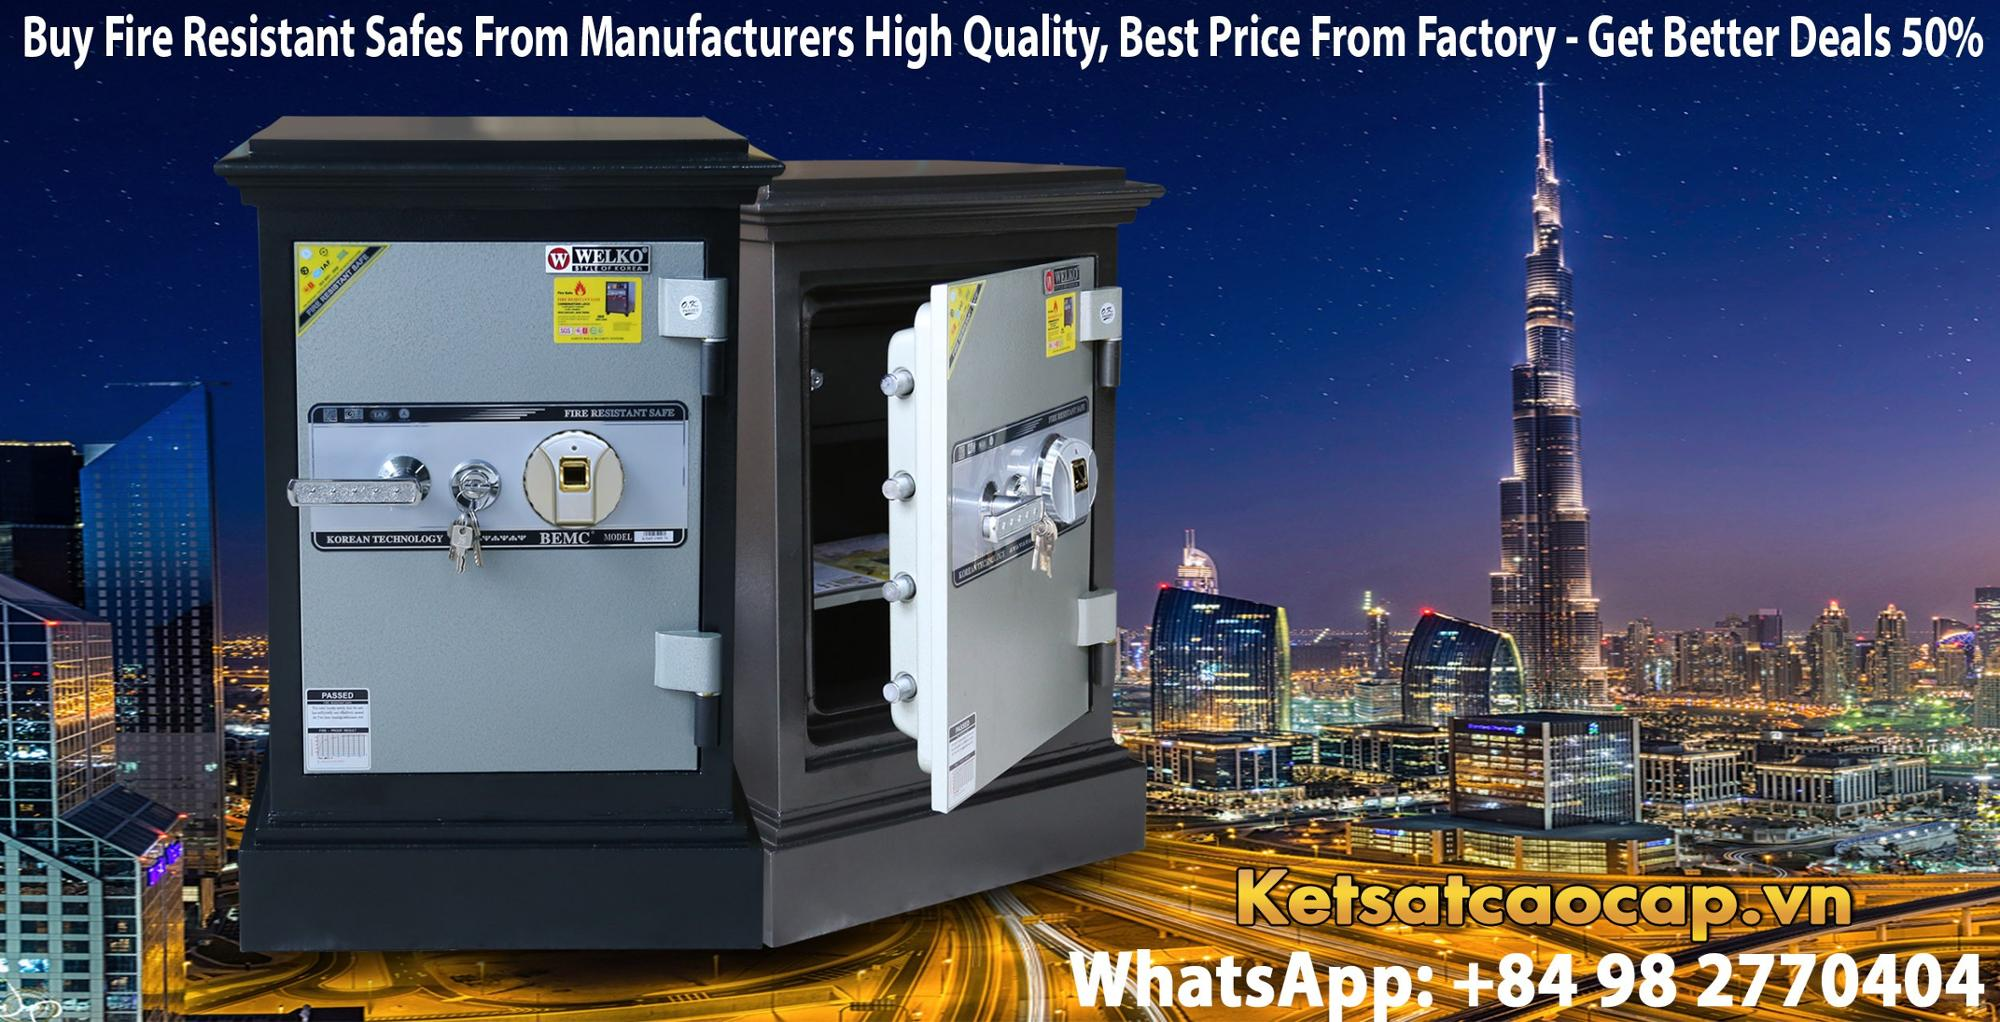 DC45 F Home Safe For Sale Free Shipping Worldwide